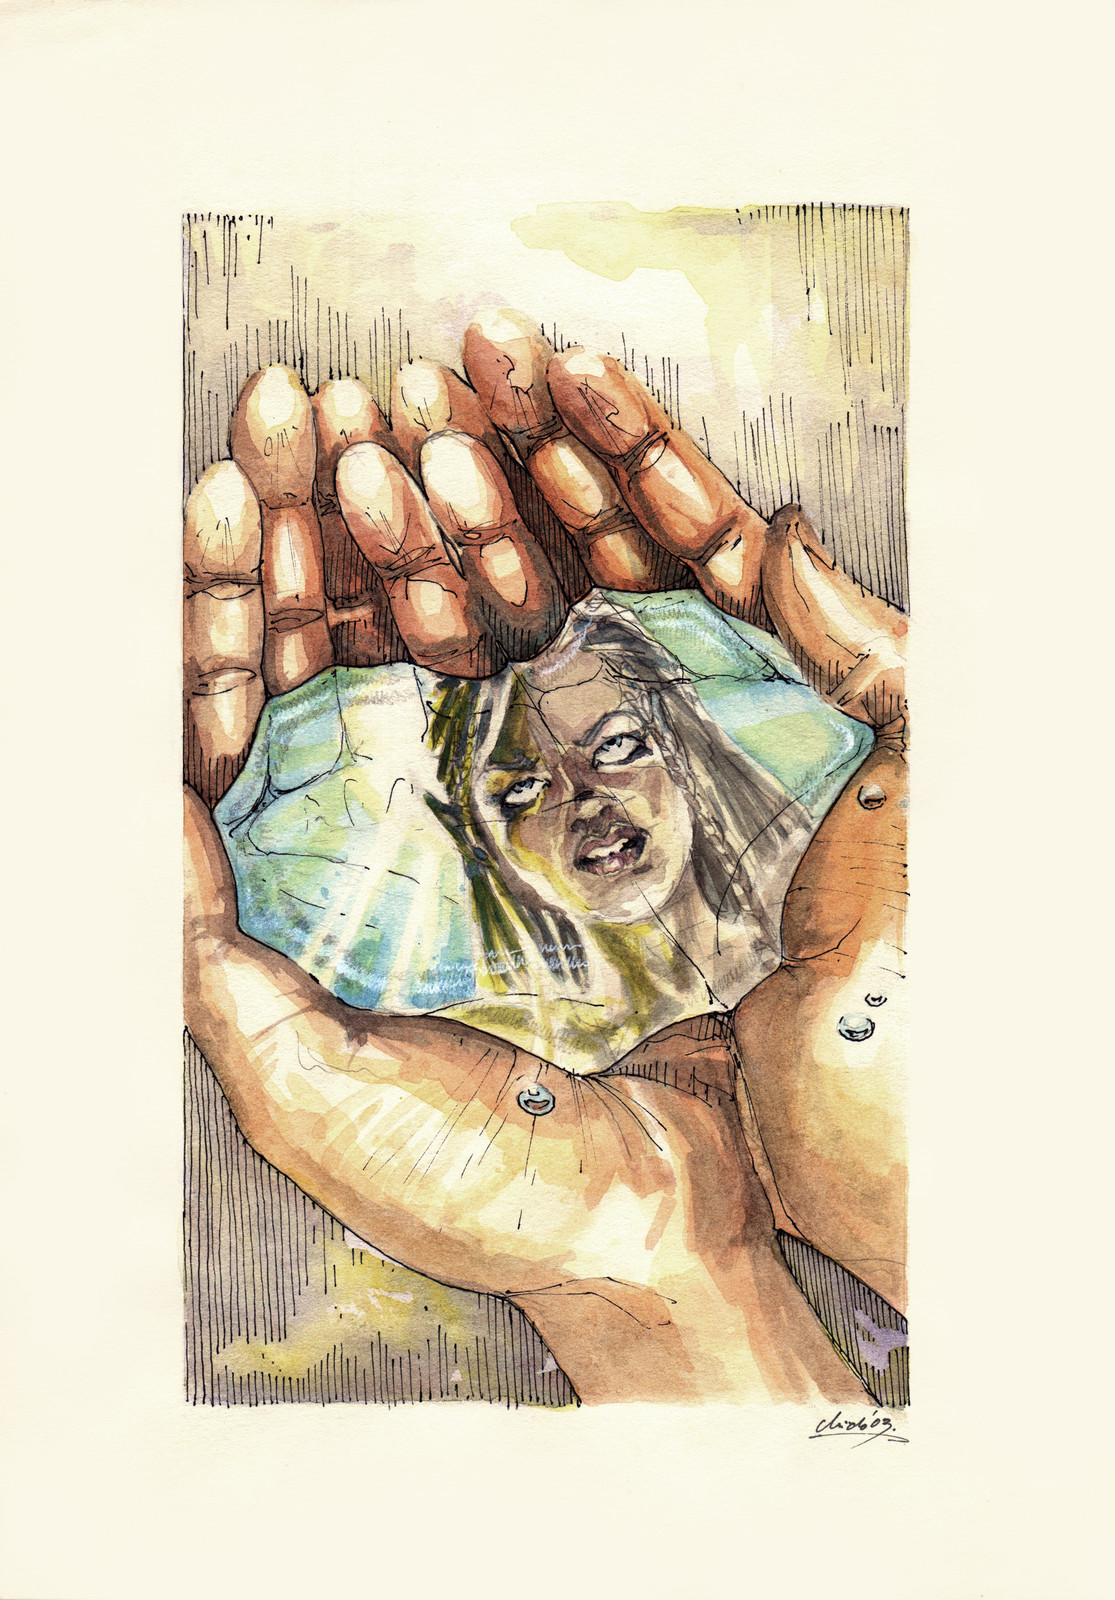 Soul in the palm of the hand